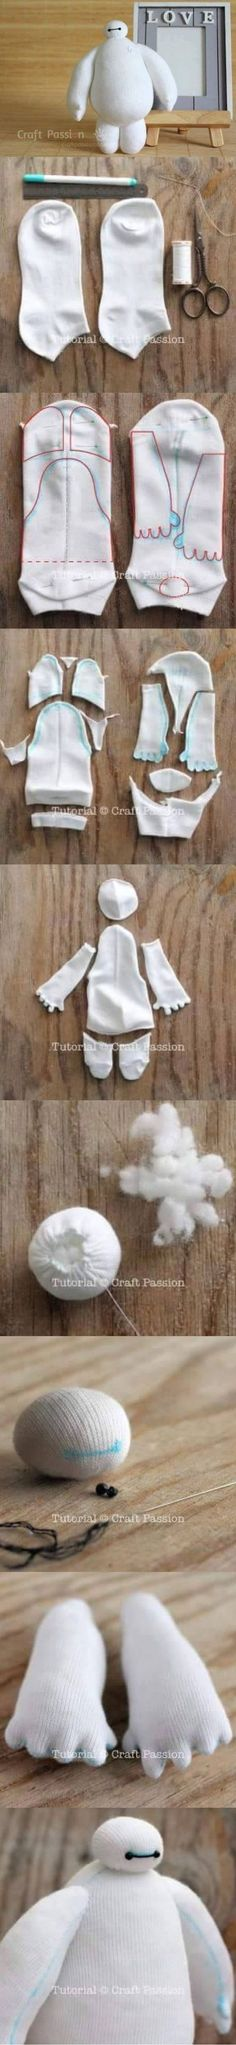 For those who are fans of Baymax and want to make them. Here, DIY Baymax from socks Sock Crafts, Cute Crafts, Crafts To Do, Sewing Crafts, Crafts For Kids, Arts And Crafts, Paper Crafts, Craft Kids, Disney Diy